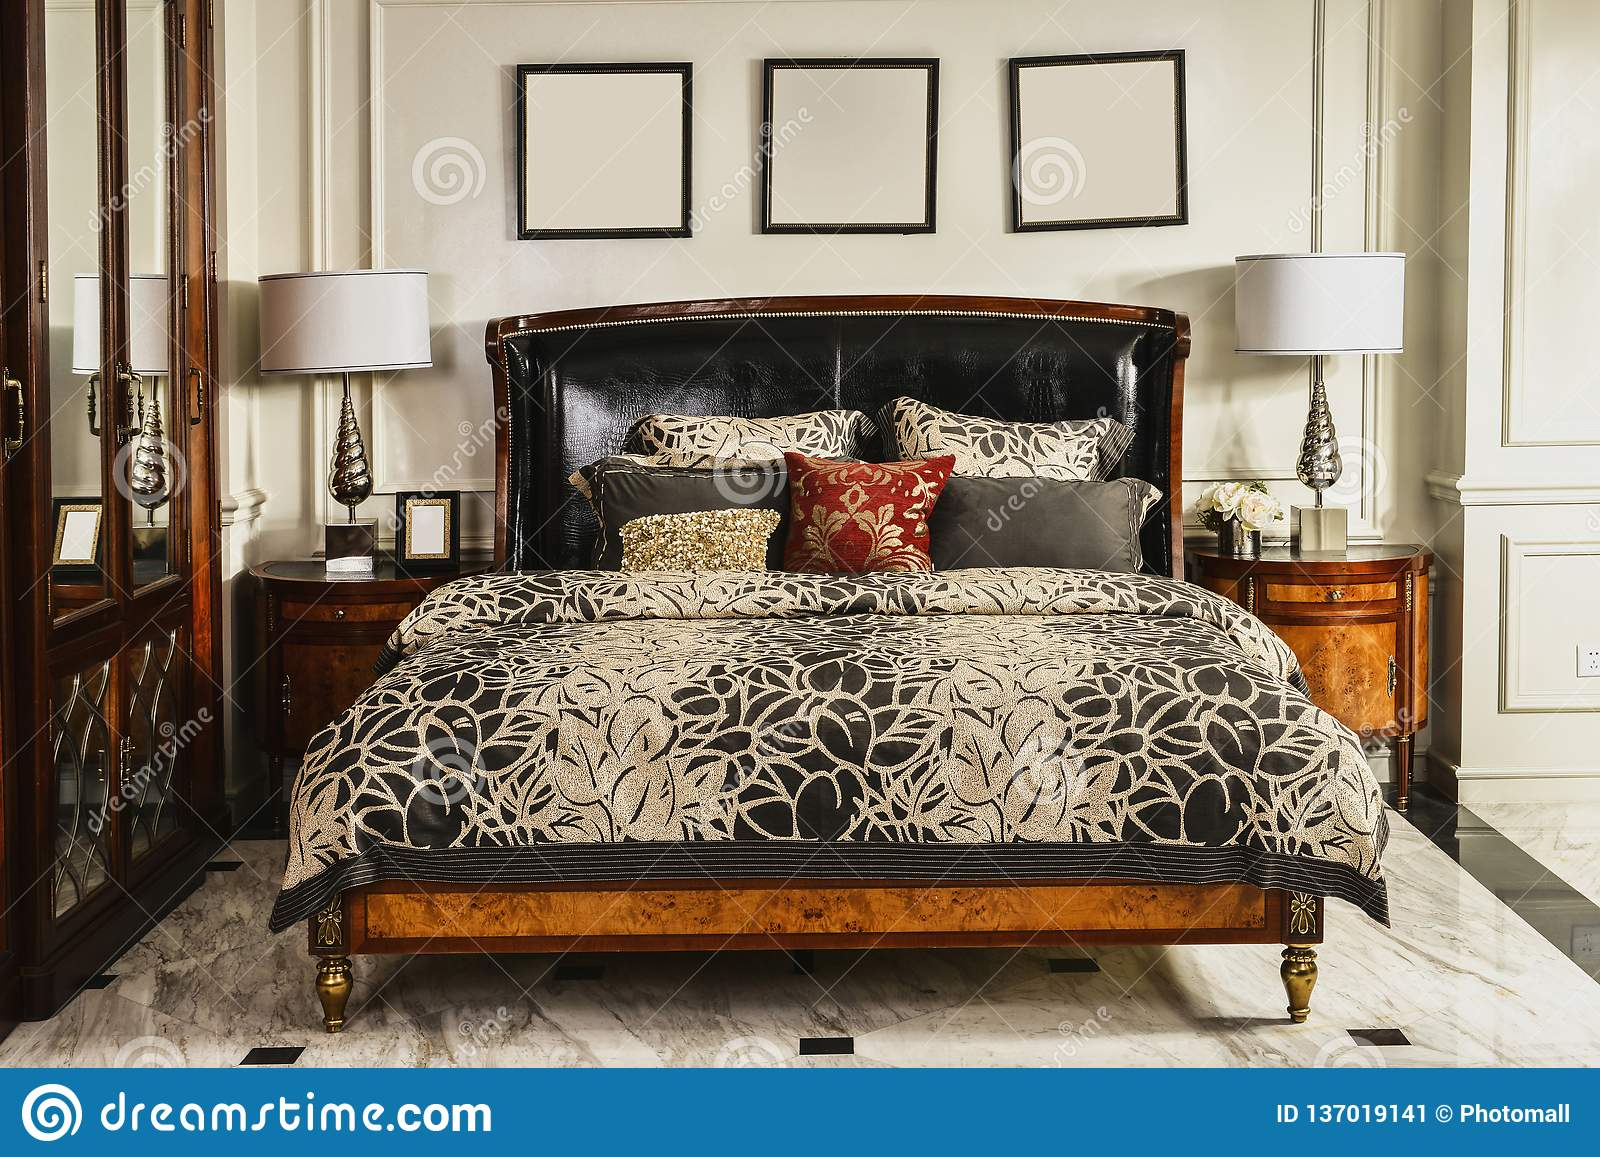 Bedroom Furniture In Luxury House Stock Image - Image of ...